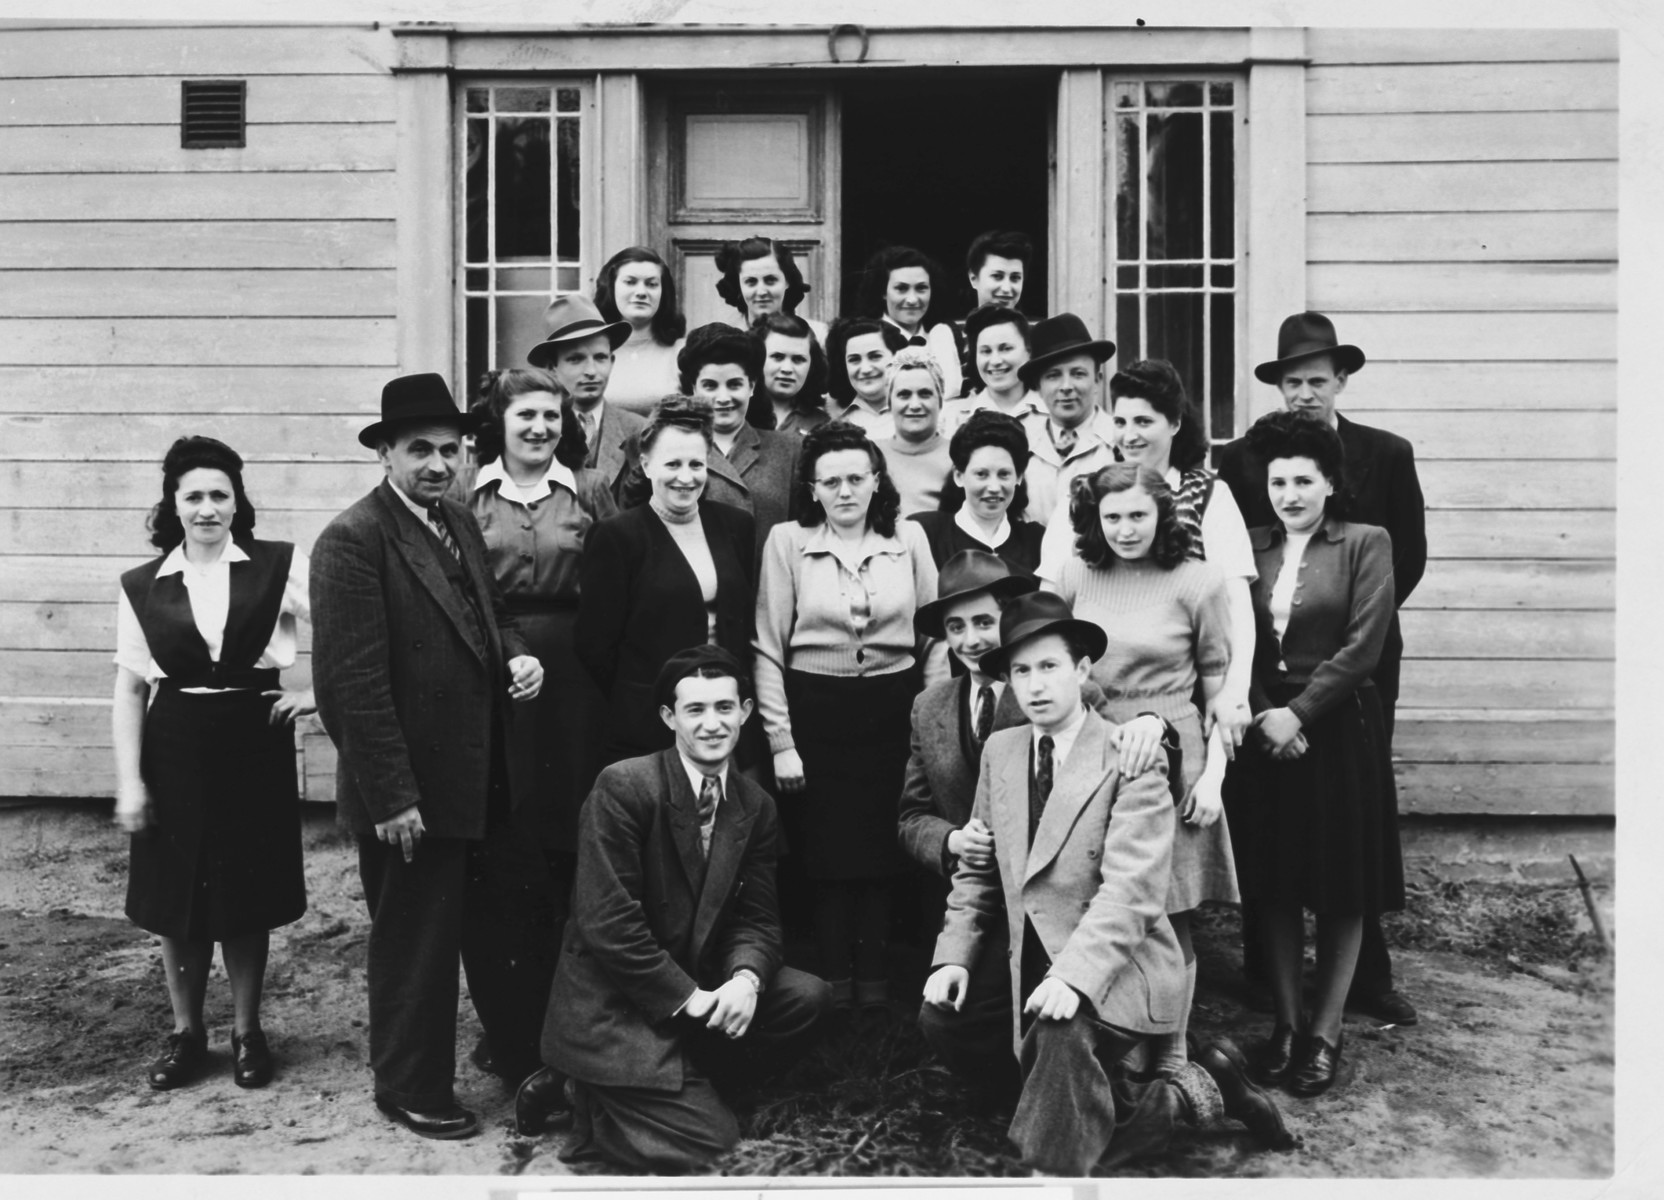 Group portrait of religious Jewish displaced persons in Sweden.  Regina Pollack is pictured in the third row, second from the right.